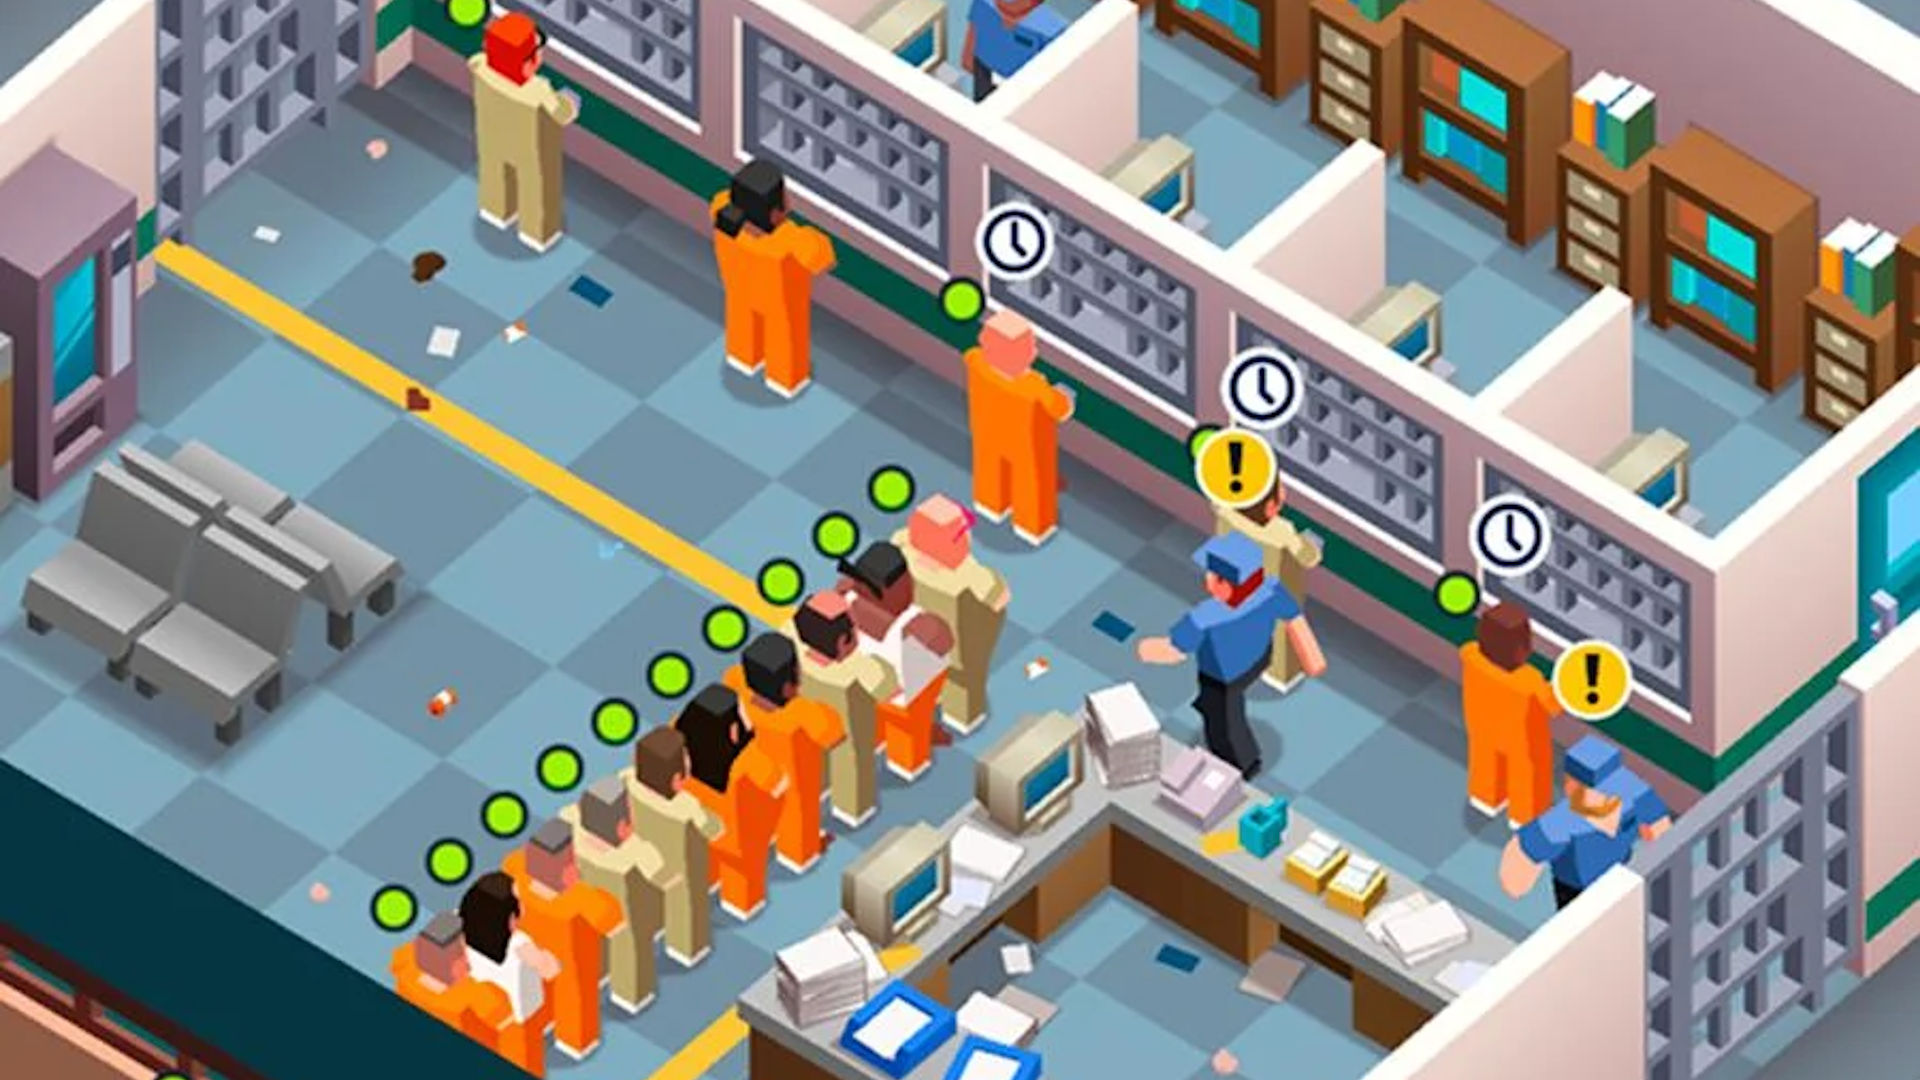 Code Prison Tycoon Roblox Prison Empire Tycoon Pocket Tactics